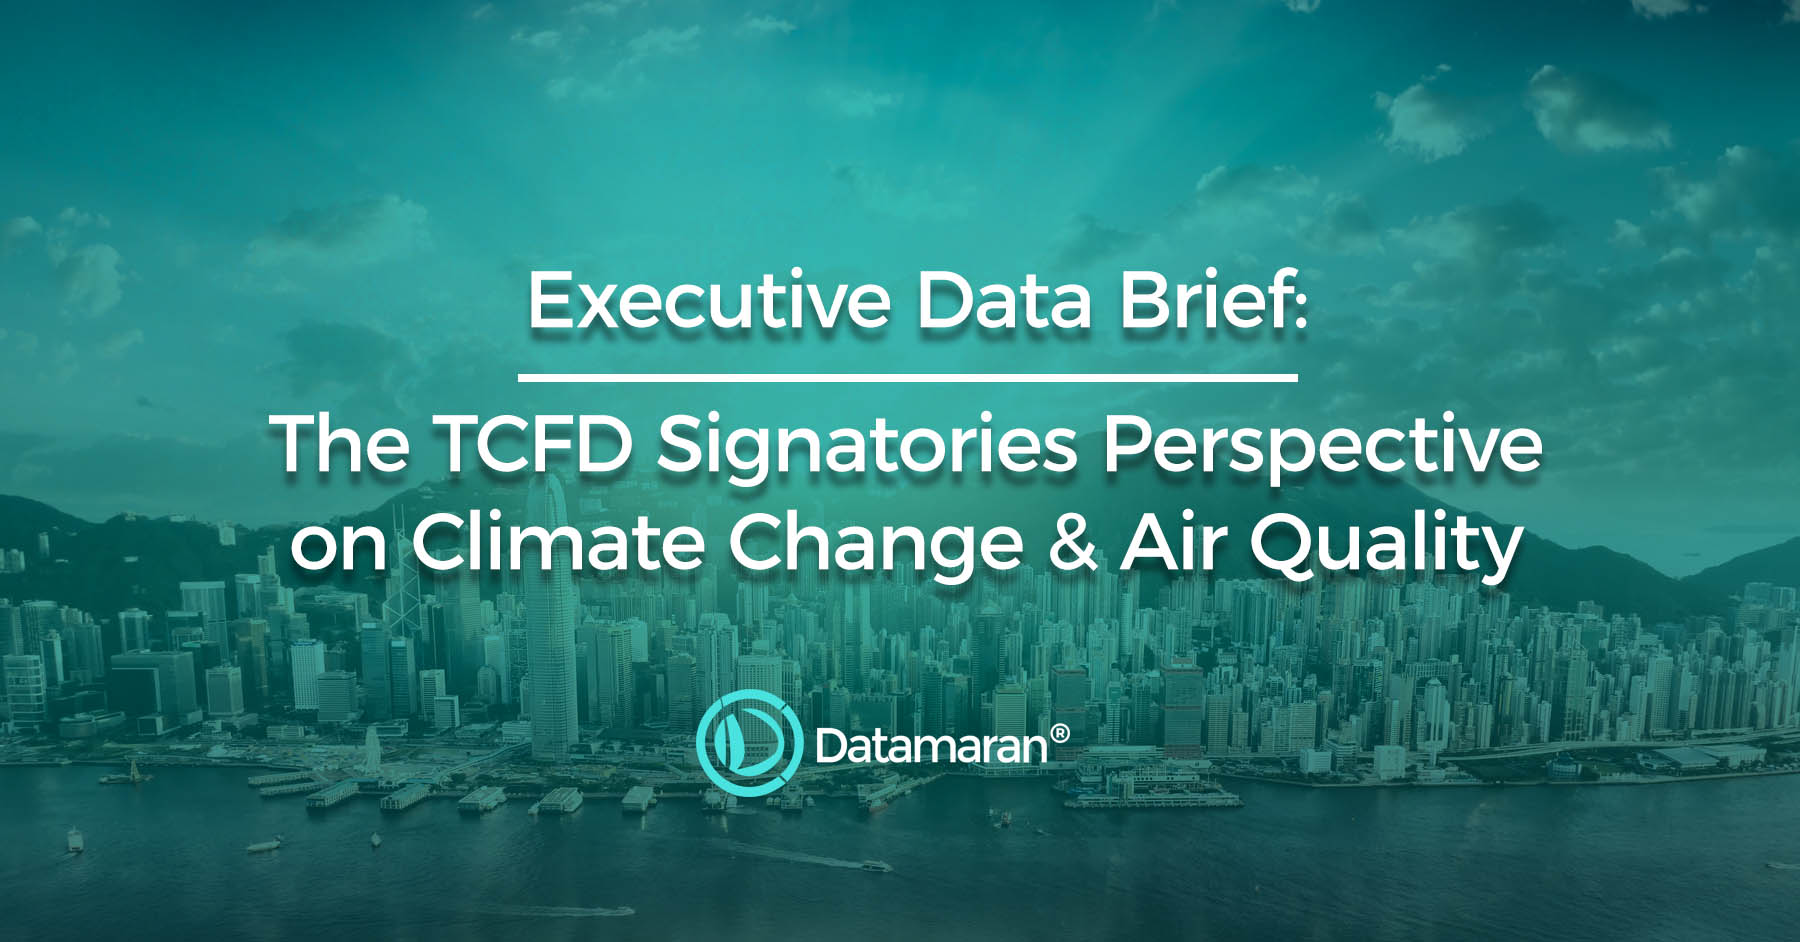 TCFD signatories perspective on Climate Change and Air Quality